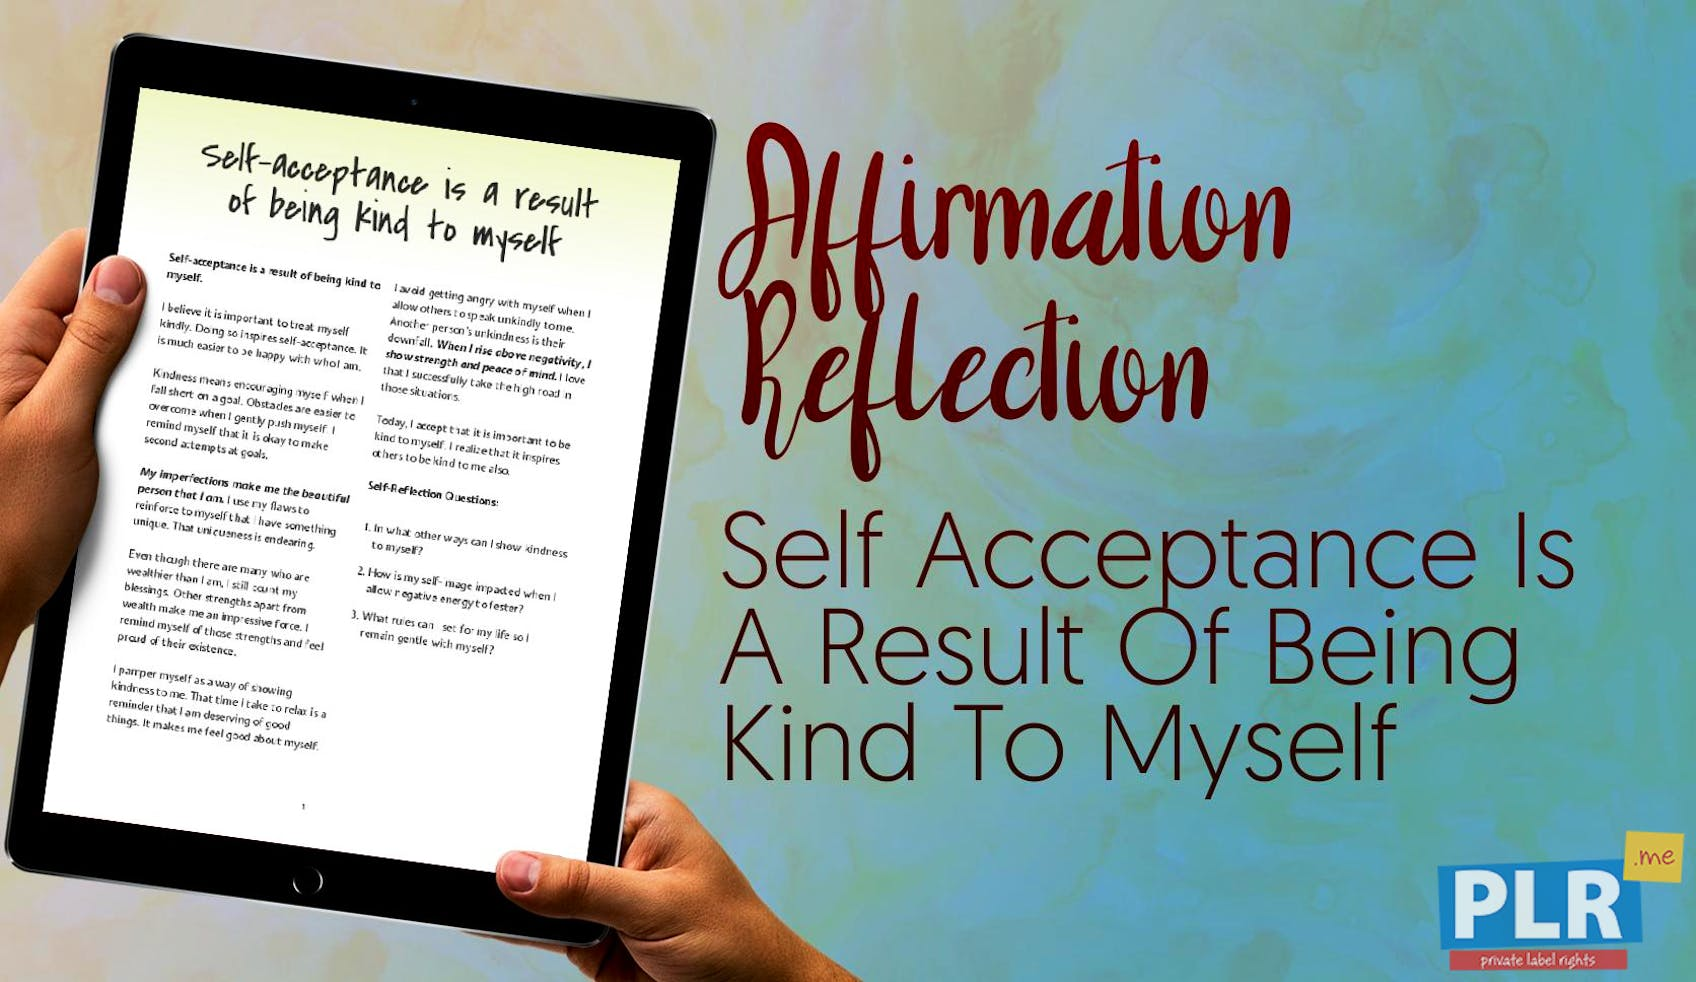 Self Acceptance Is A Result Of Being Kind To Myself